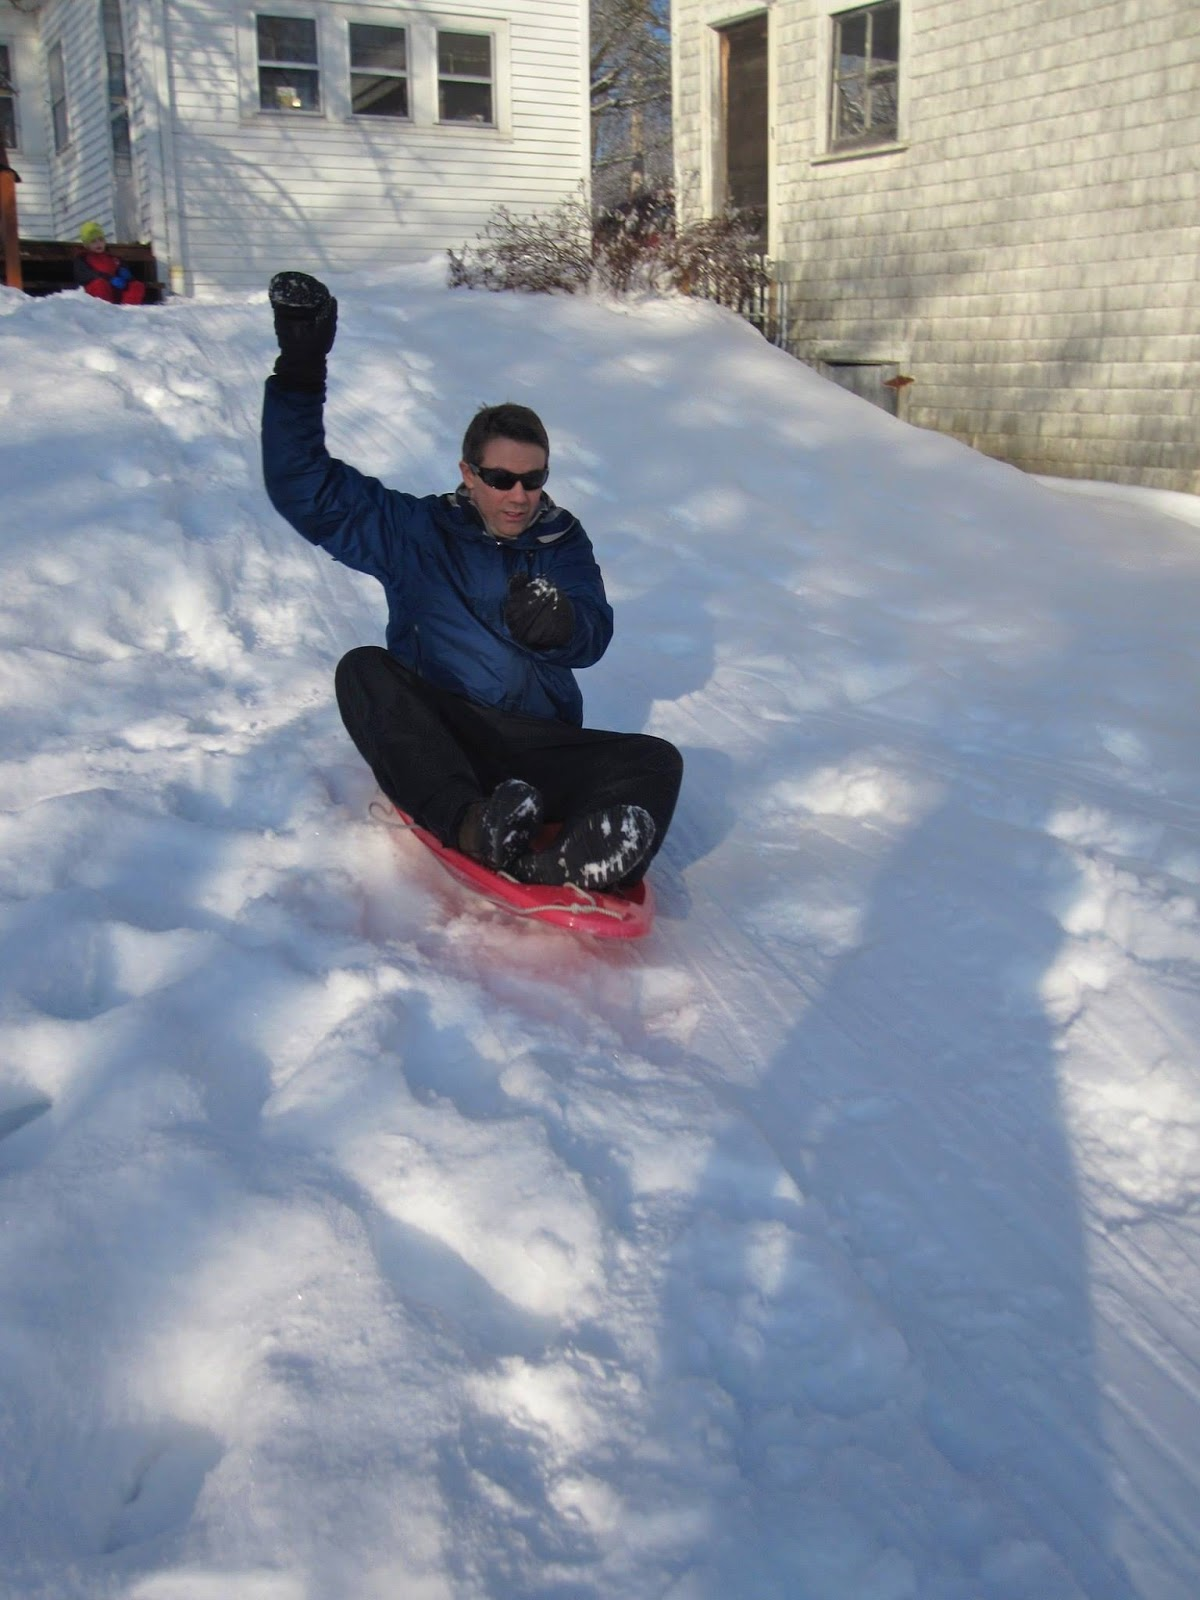 dad's turn on the sled